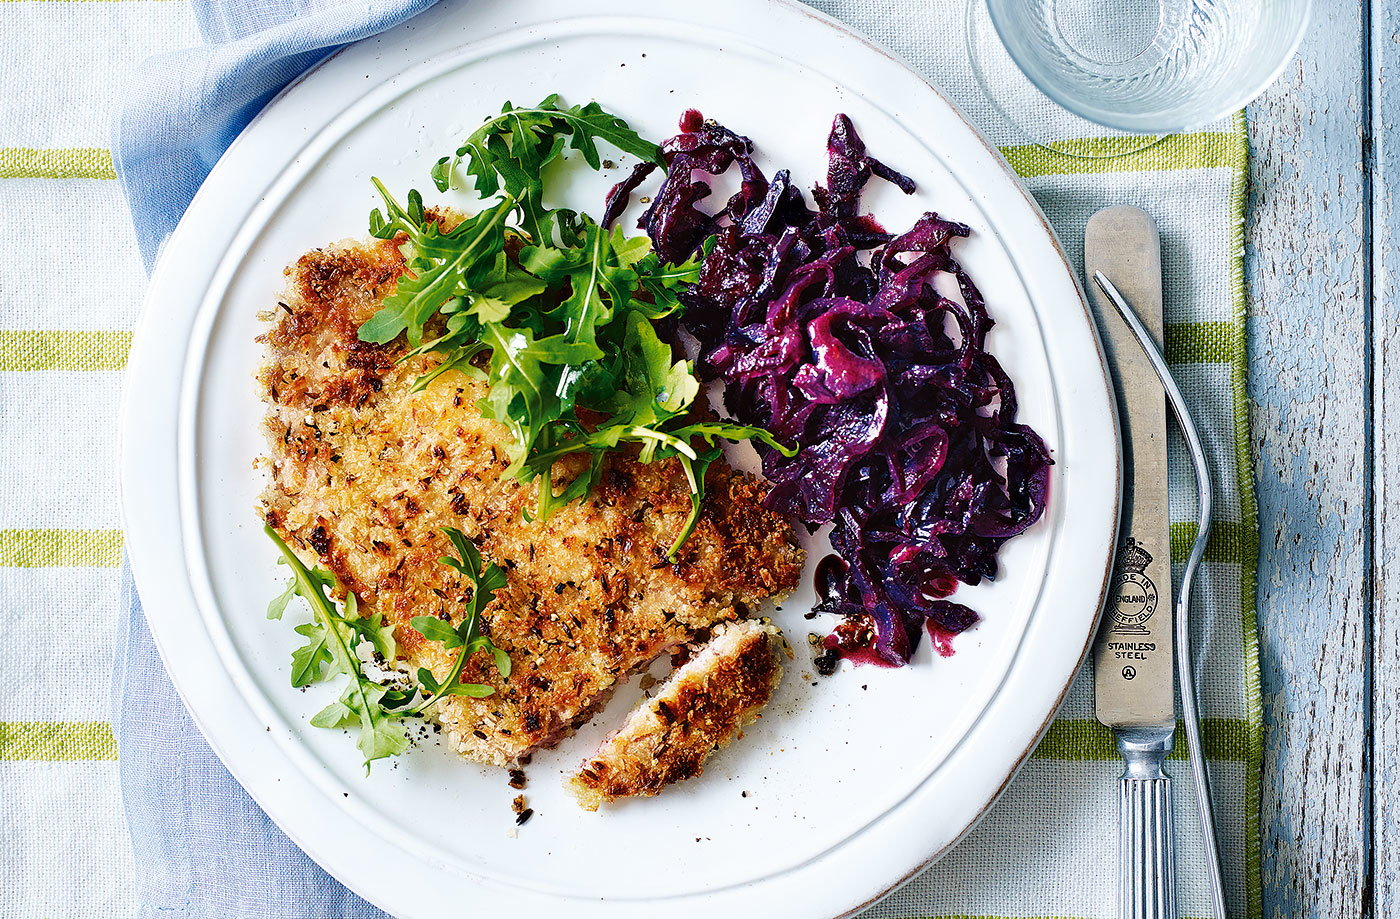 Crumbed pork chops with braised red cabbage recipe